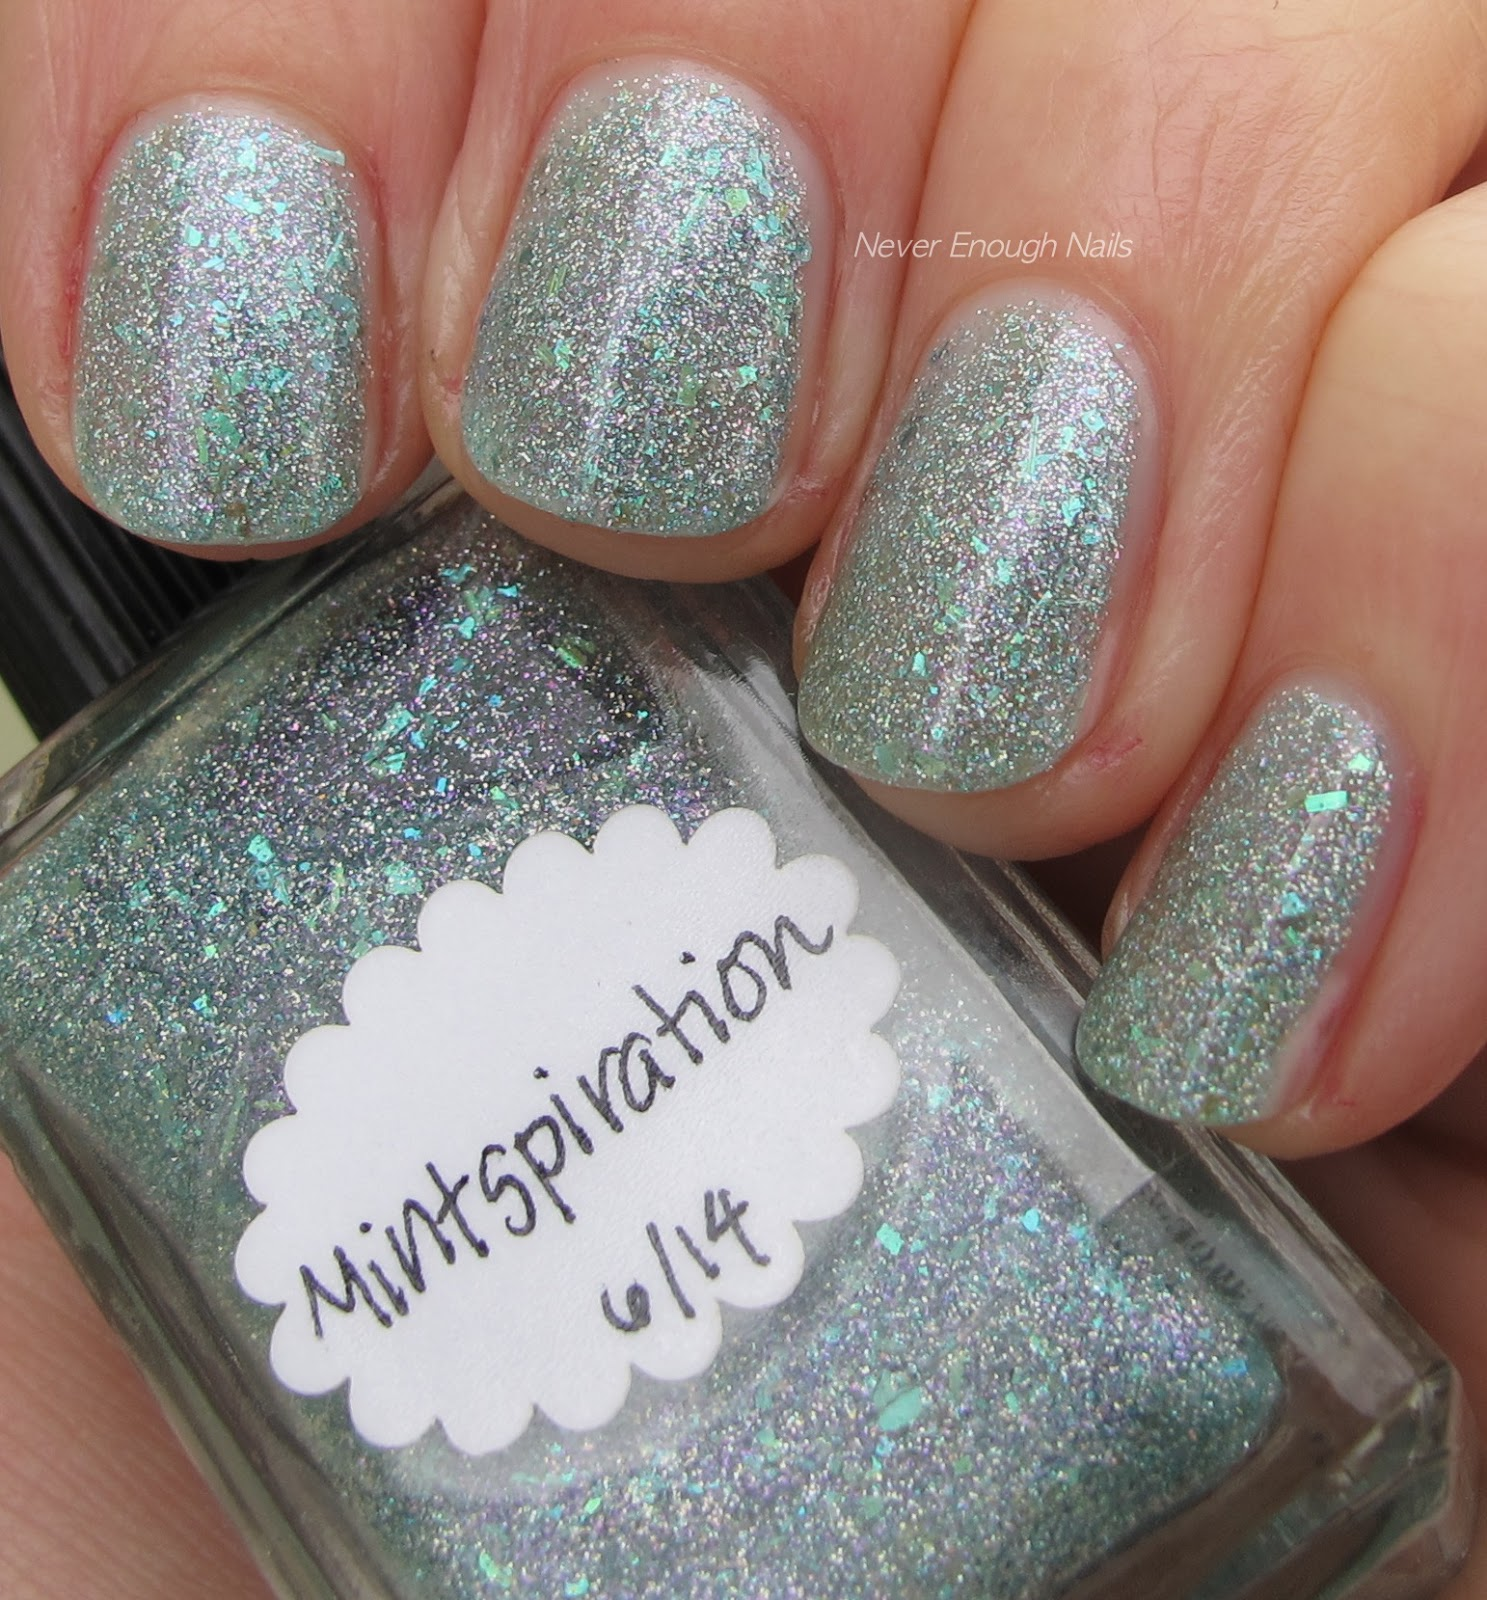 Never Enough Nails: Lynnderella Friday, Vol. 75!